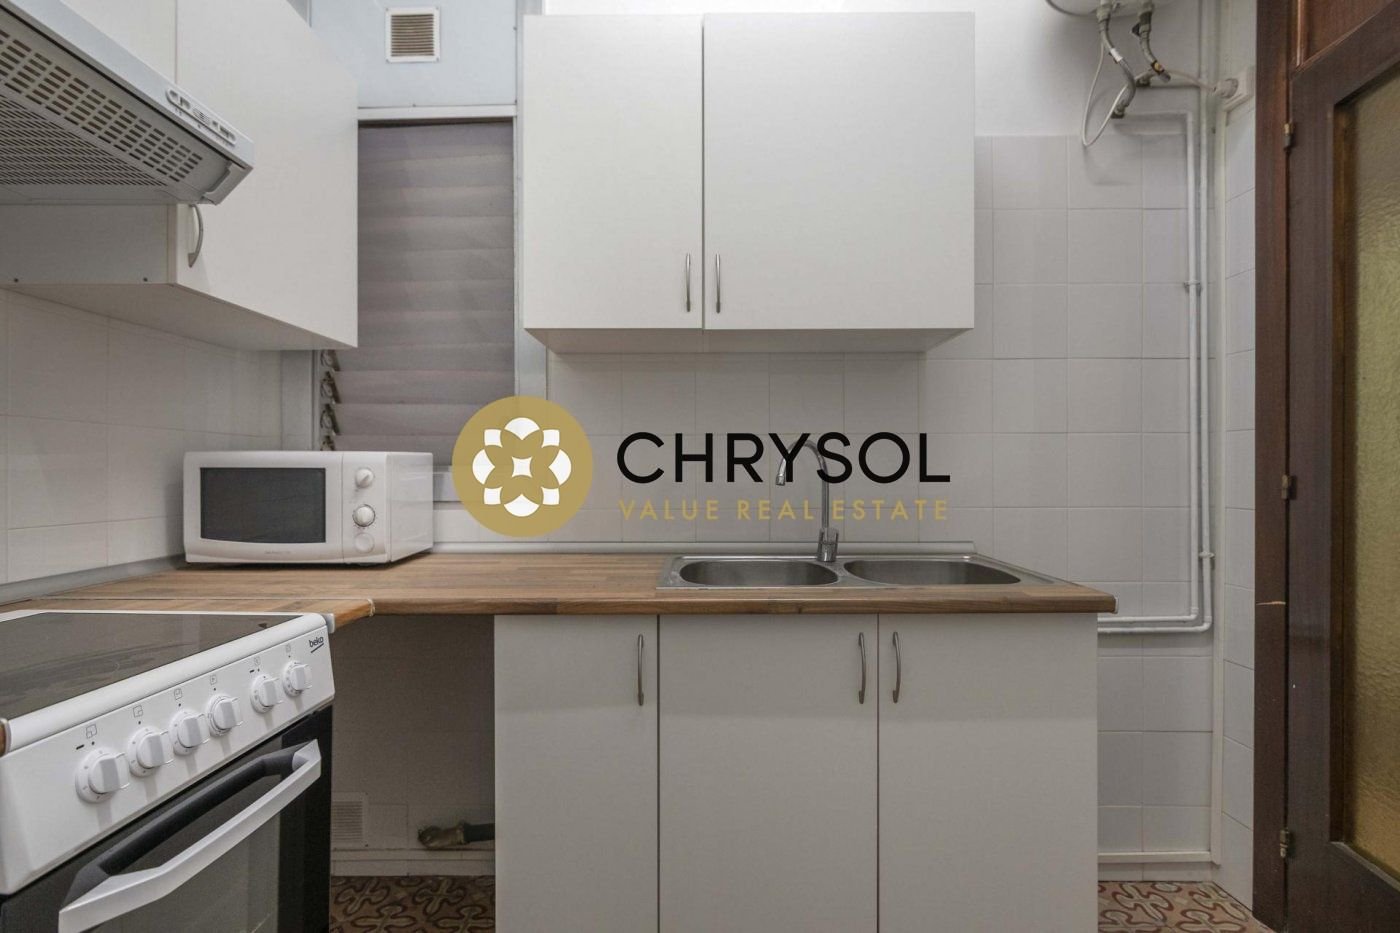 Photogallery - 4 - Chrysol Value